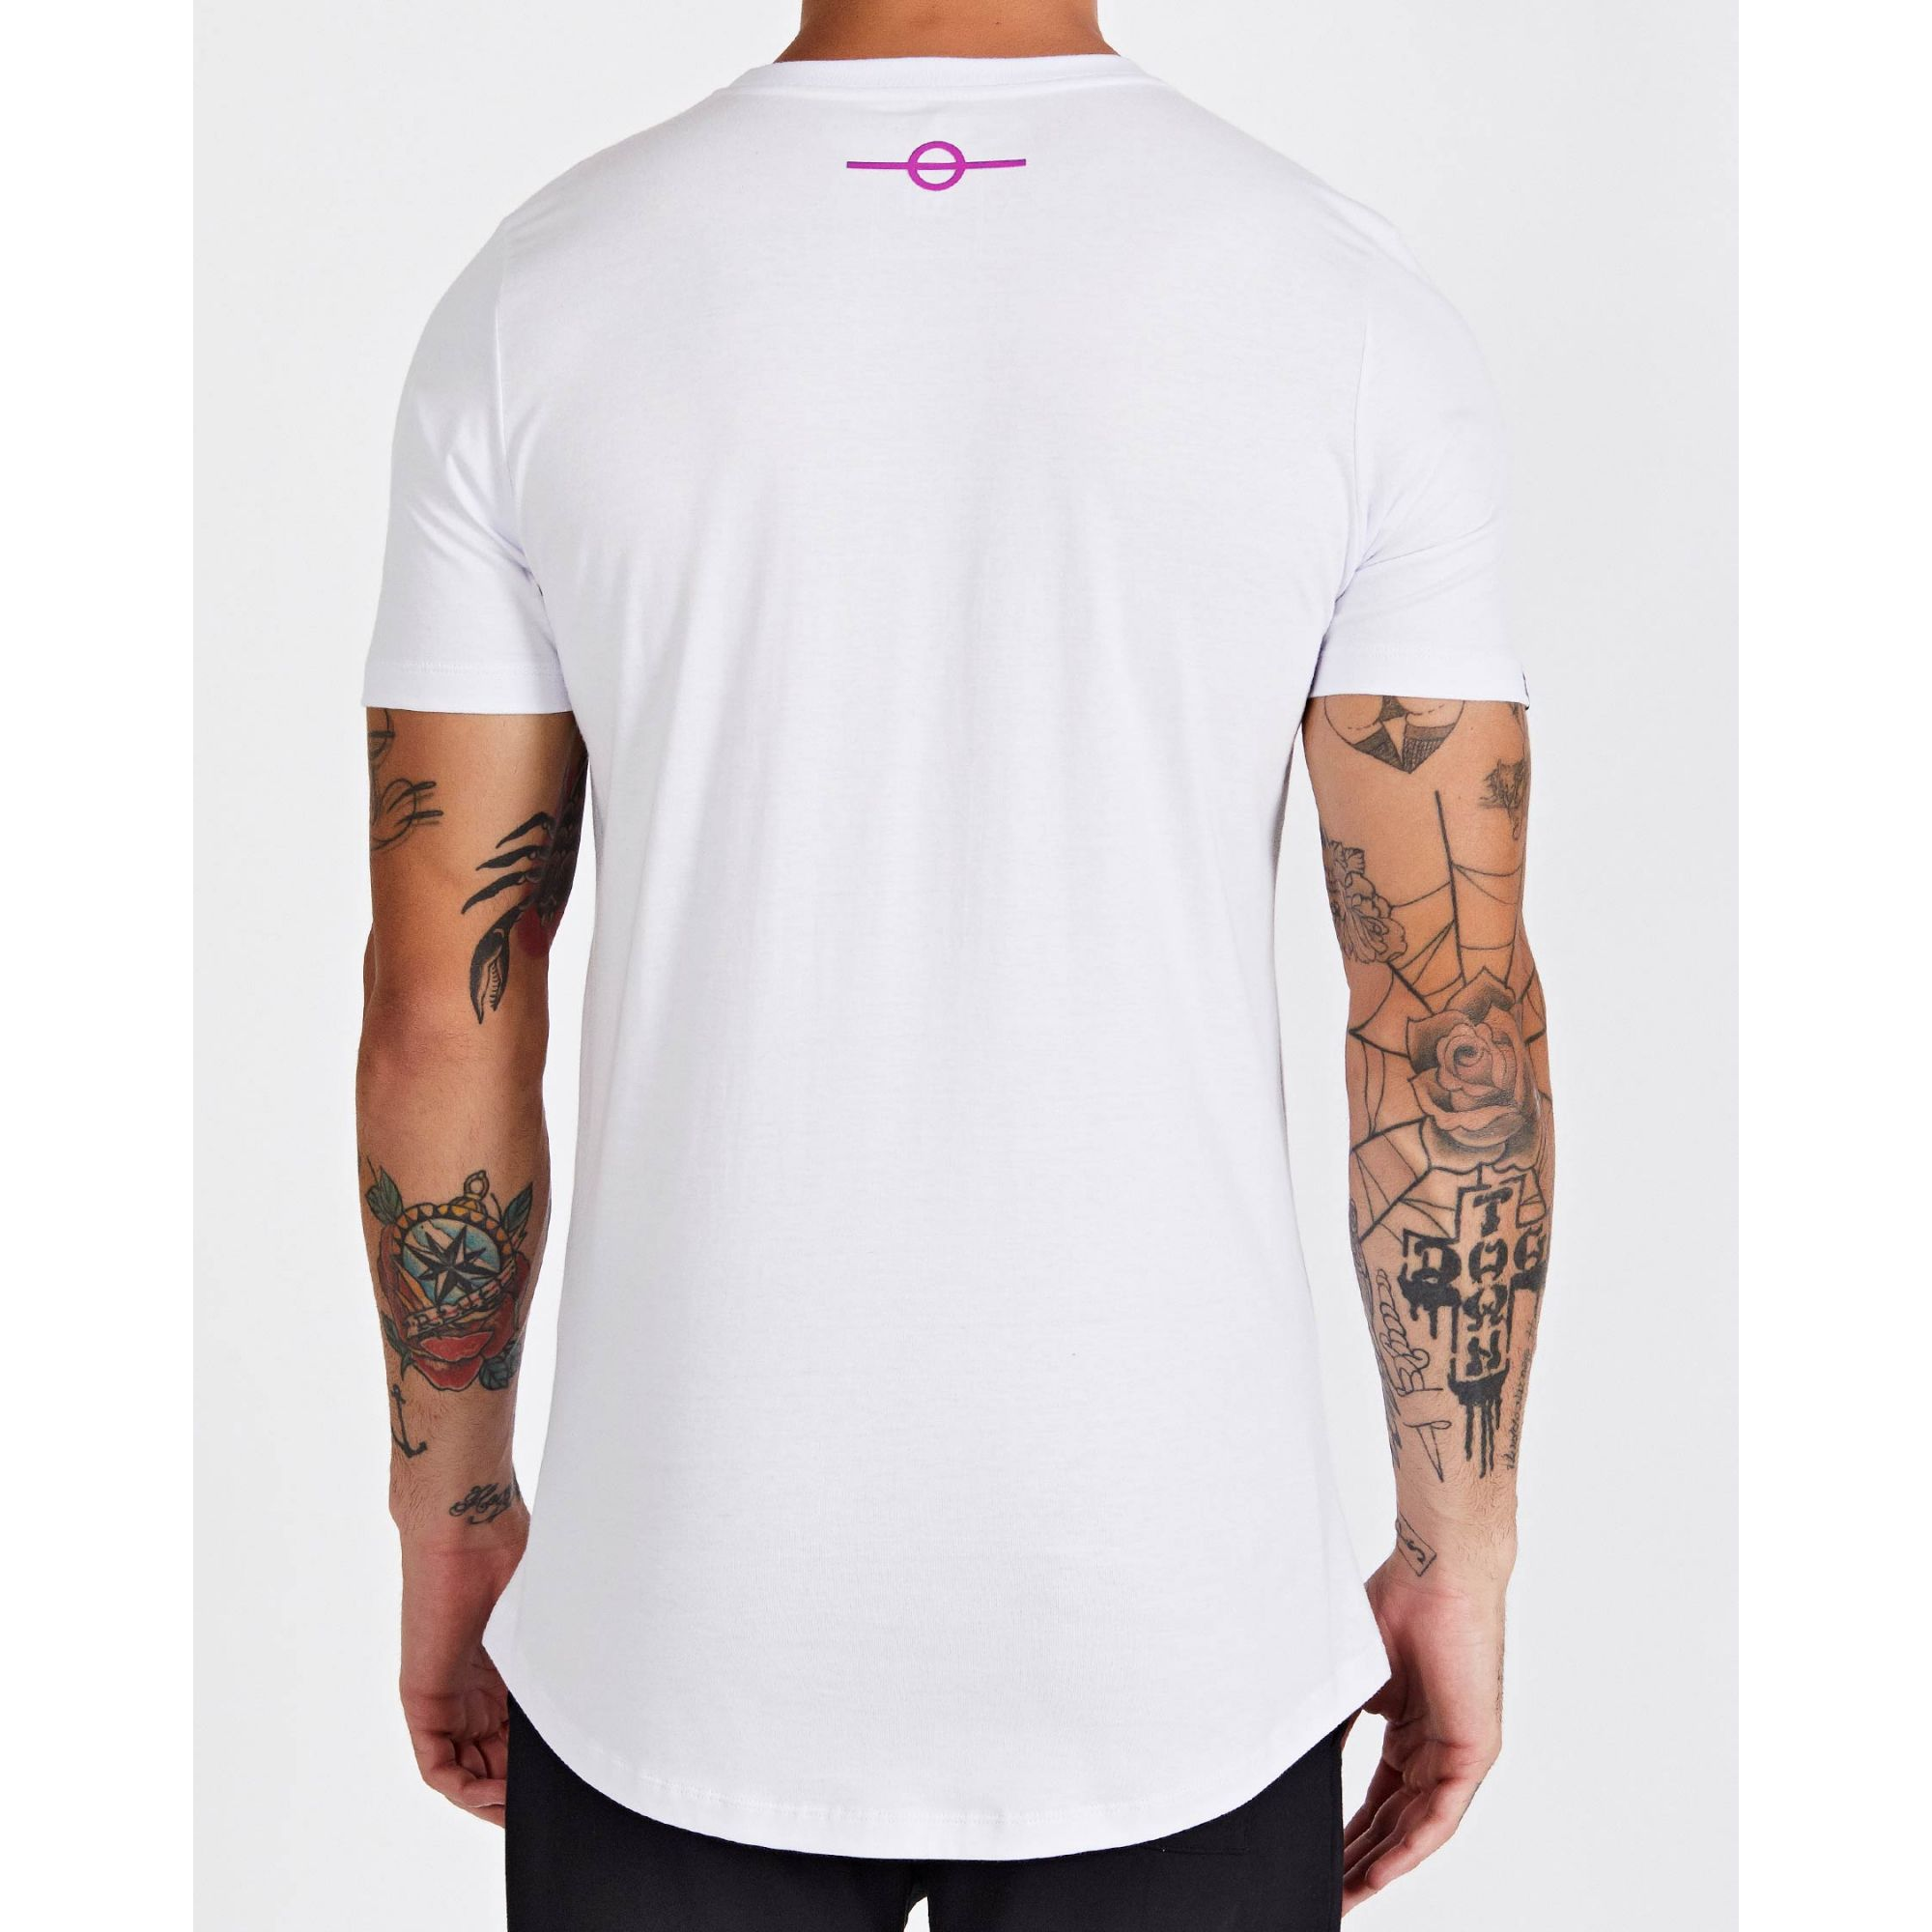 Camiseta Buh Square Believe White & Pink